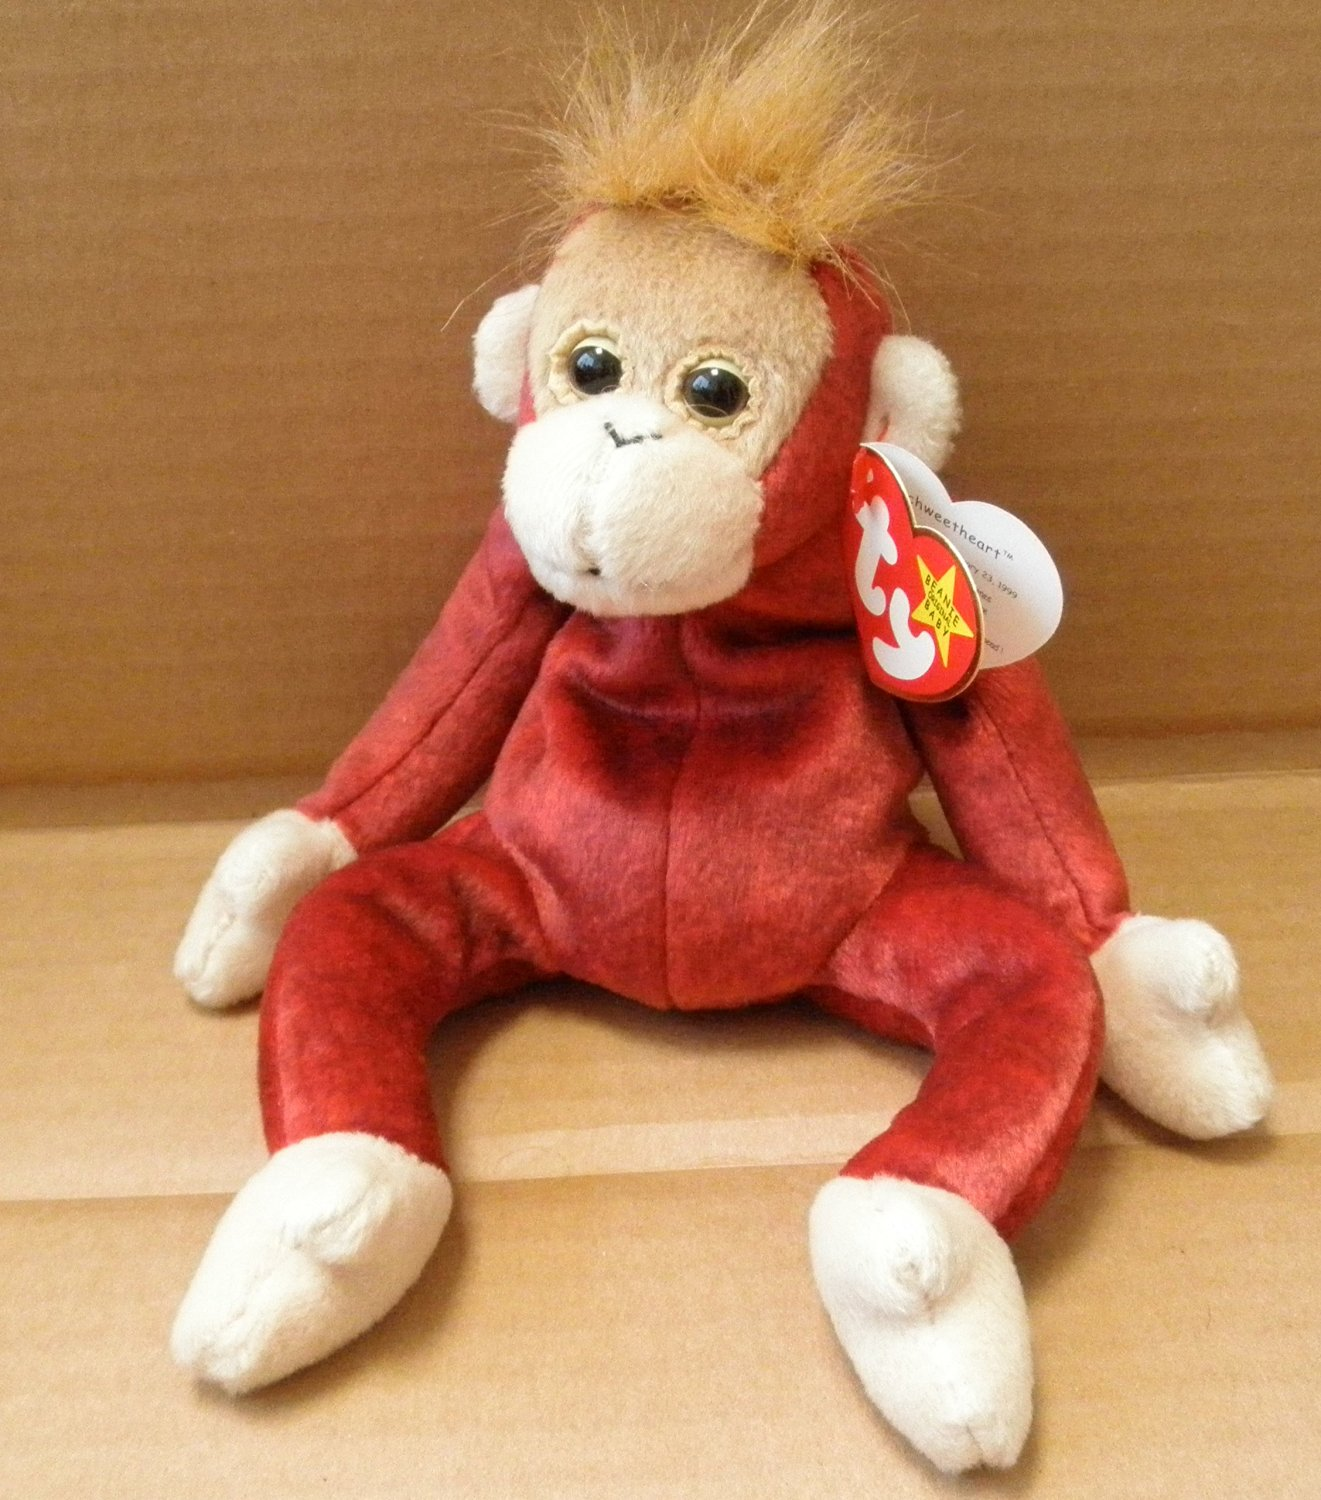 8cb3702d9ba TY Beanie Babies Schweetheart the Monkey Stuffed Animal Plush Toy - 8 inches  tall